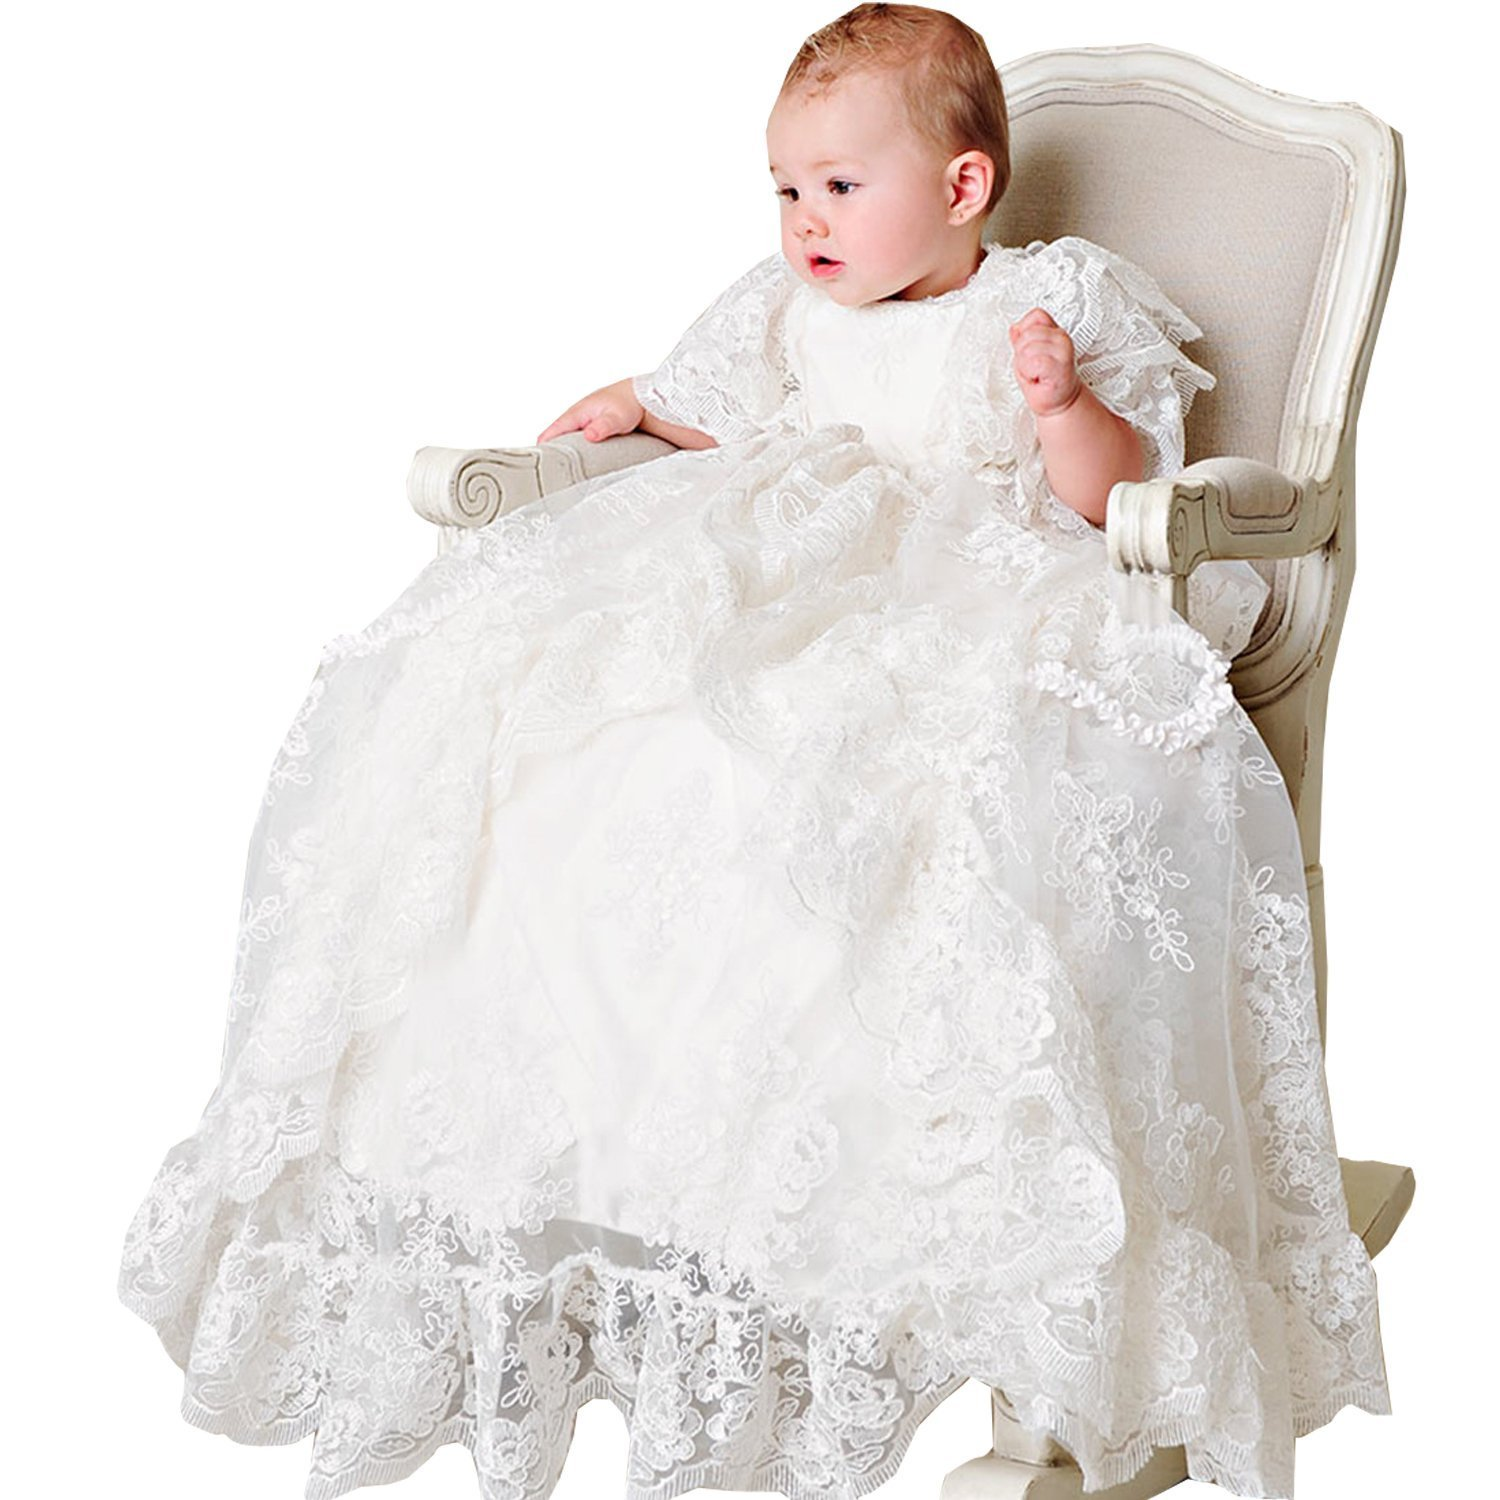 Newdeve Short Sleeve White Lace Christening Baptism Dresses Long With Cap (6-9 Months, White)